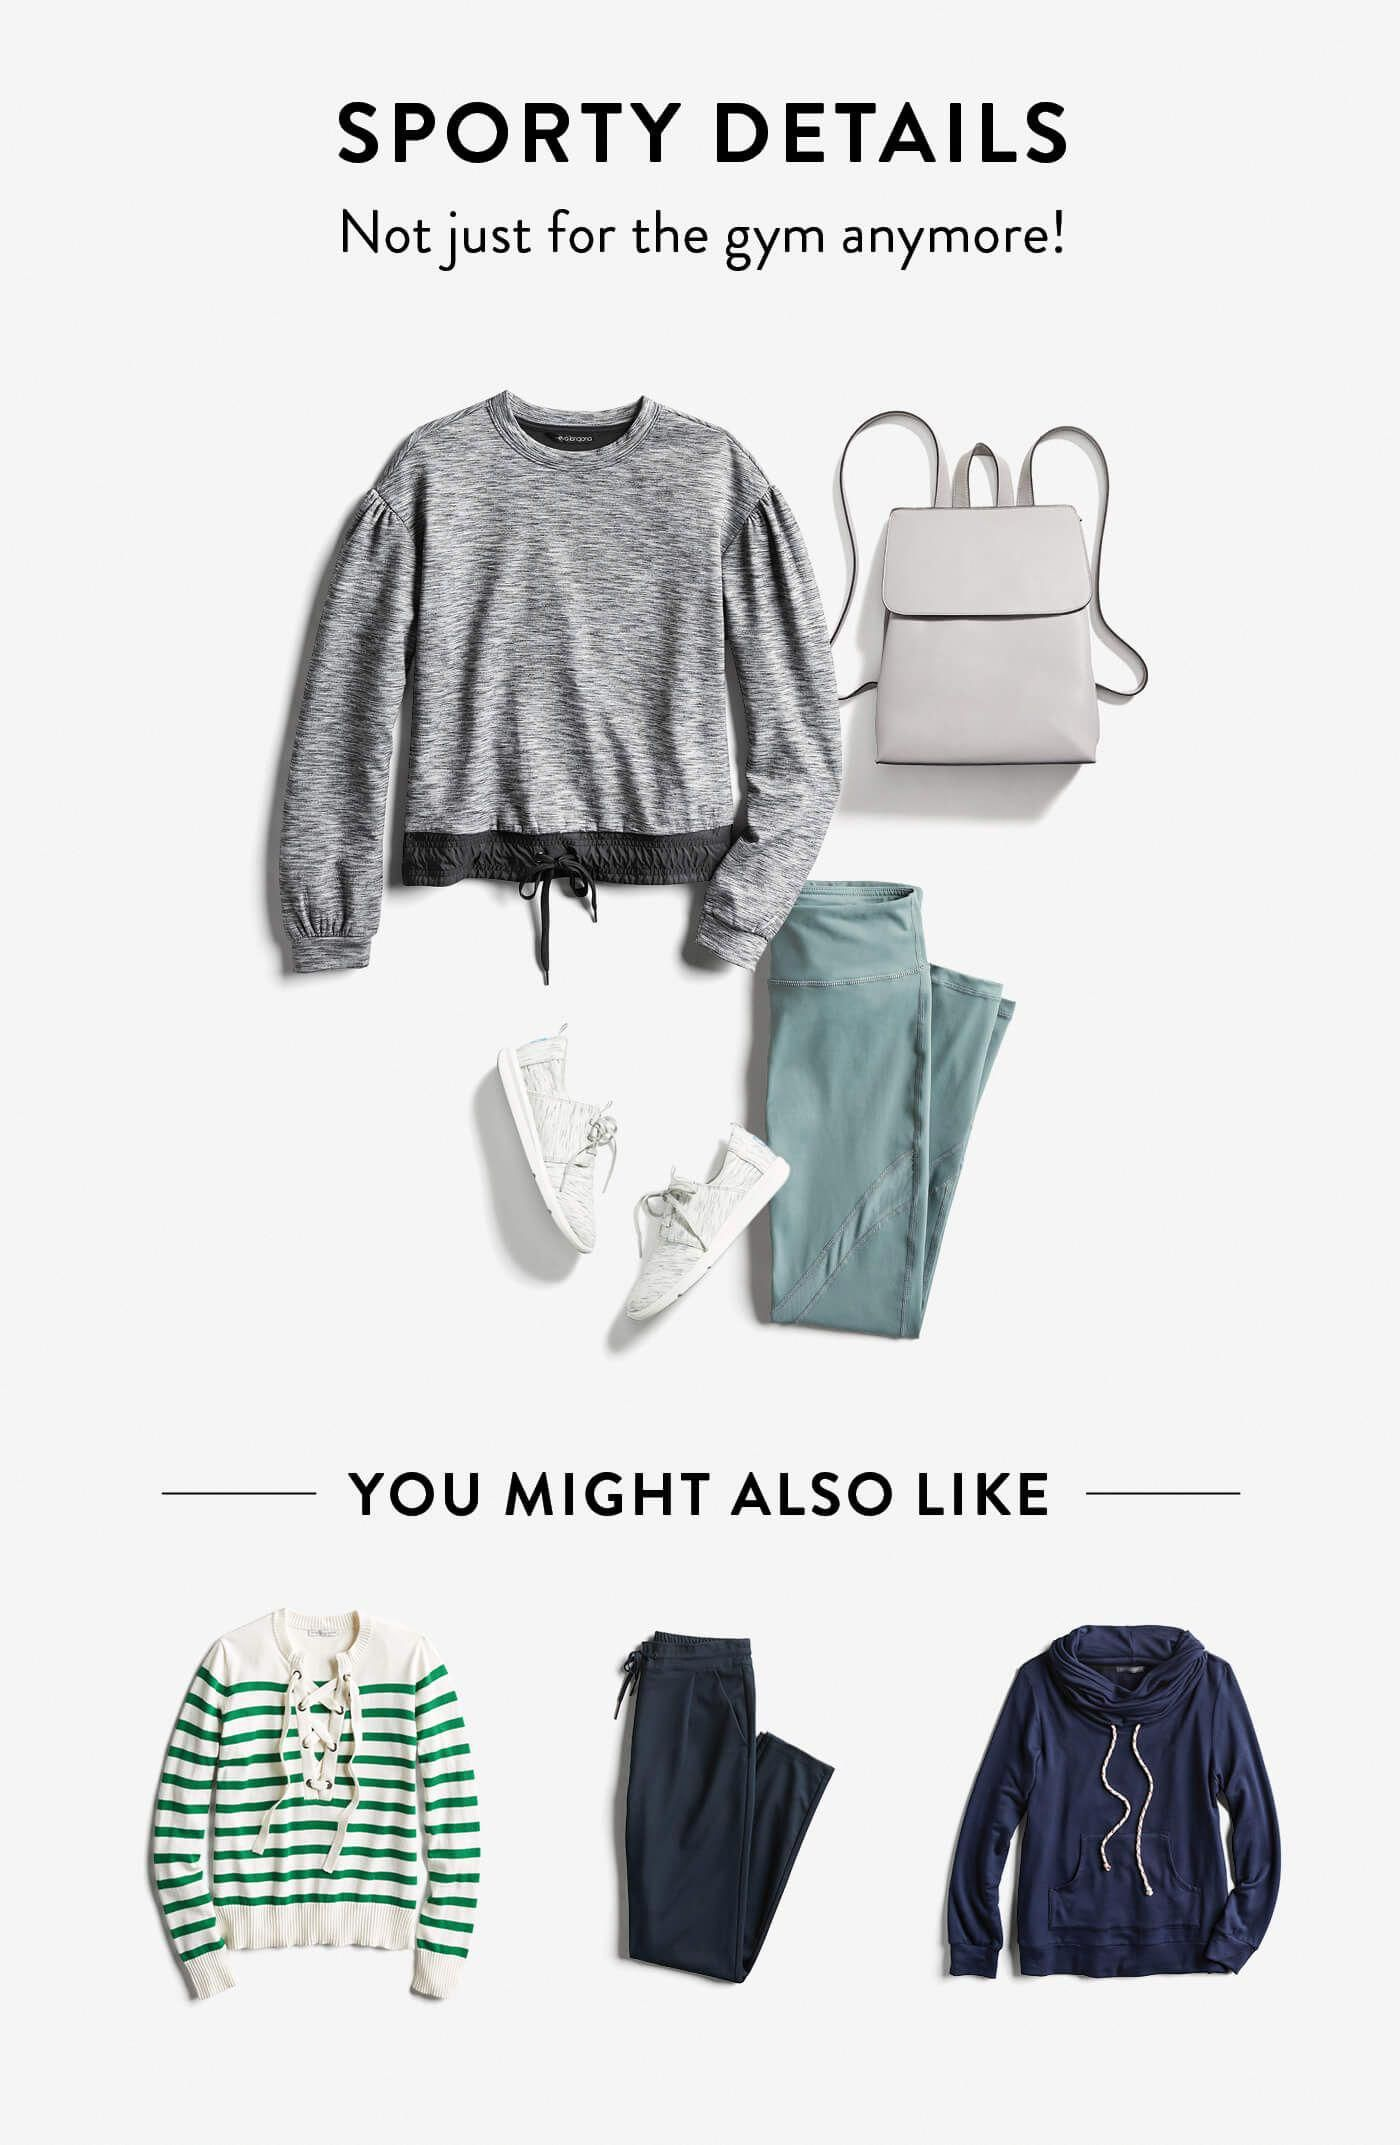 Fashion Trends I love everything but the striped green top and